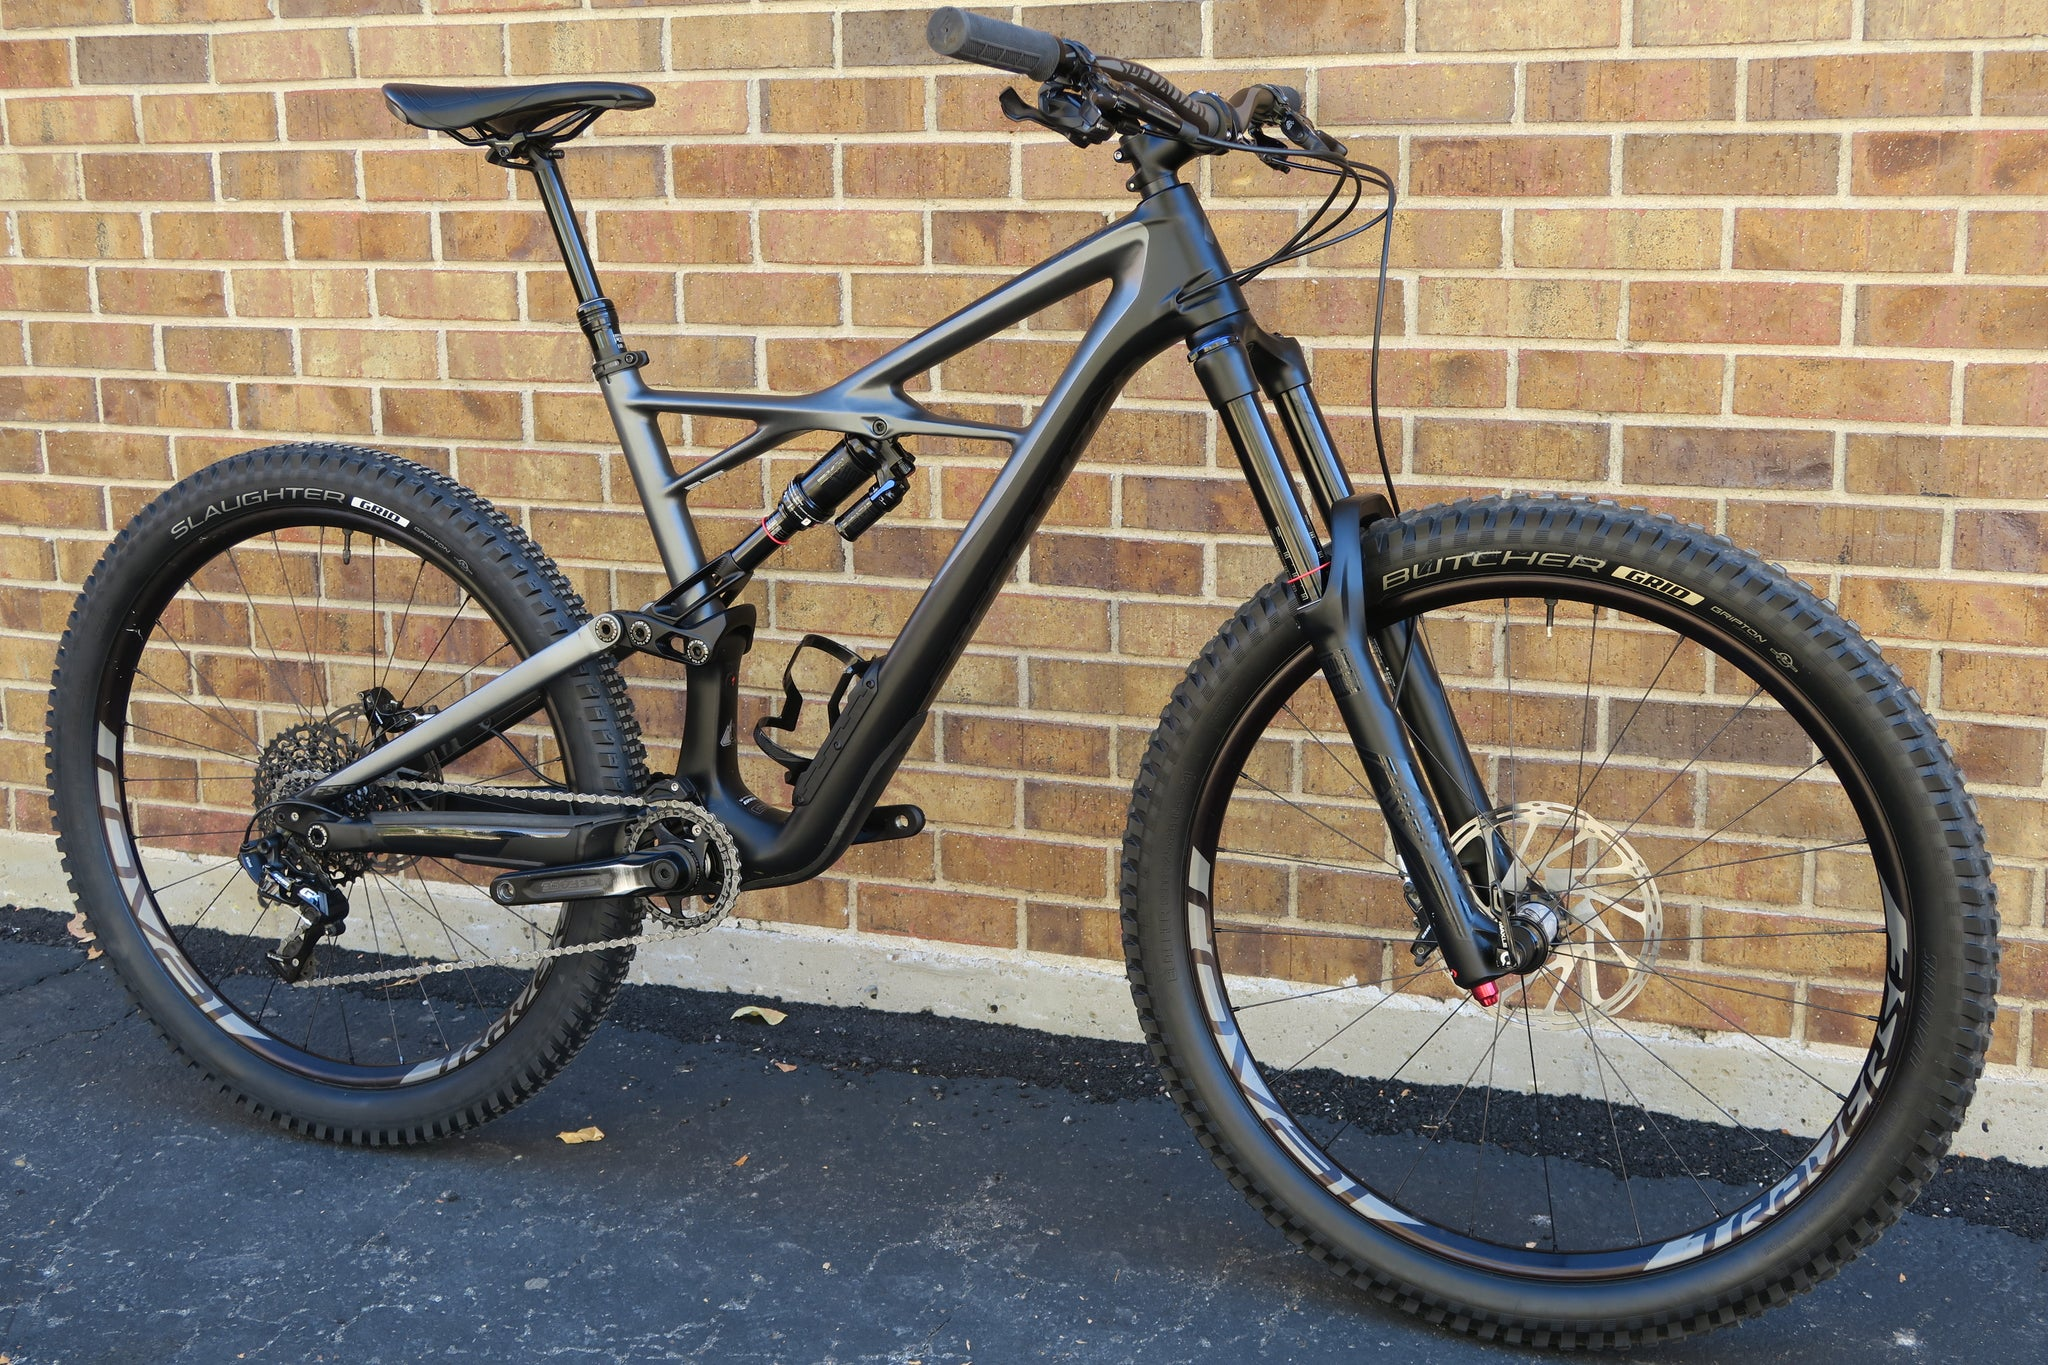 2017 SPECIALIZED ENDURO ELITE CARBON 650B